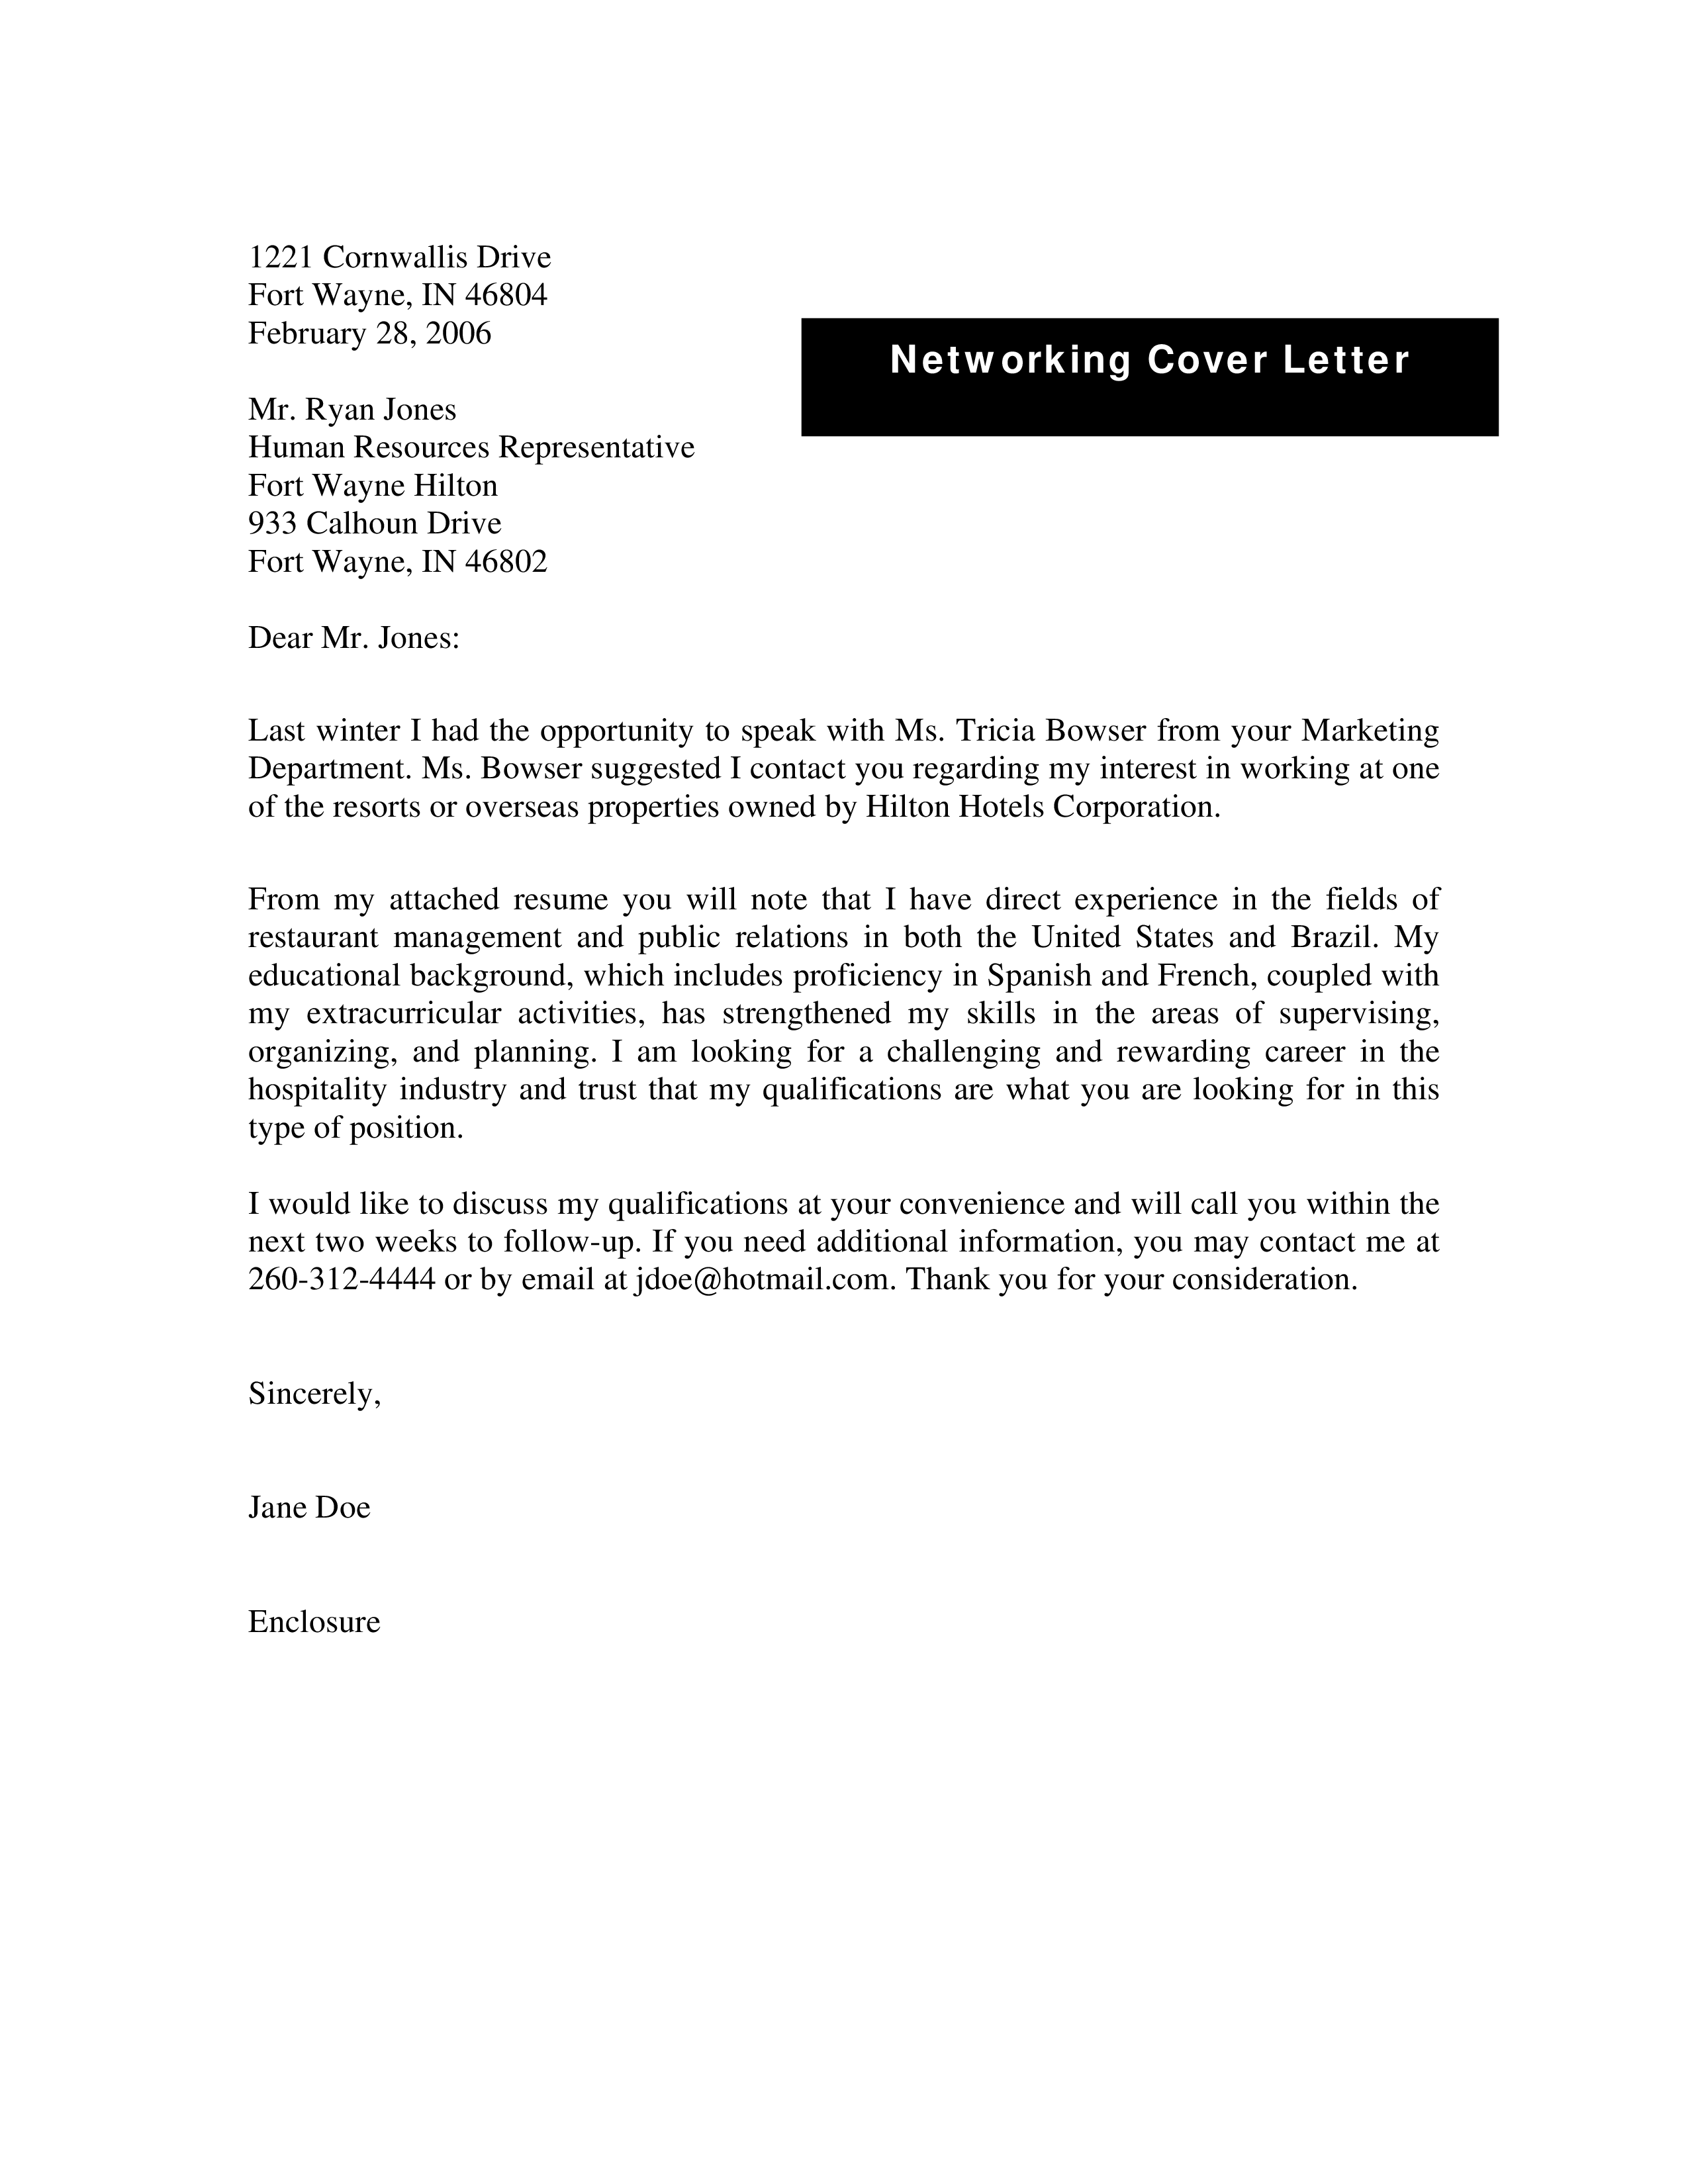 Free Networking Cover Letter Templates At Allbusinesstemplates Com